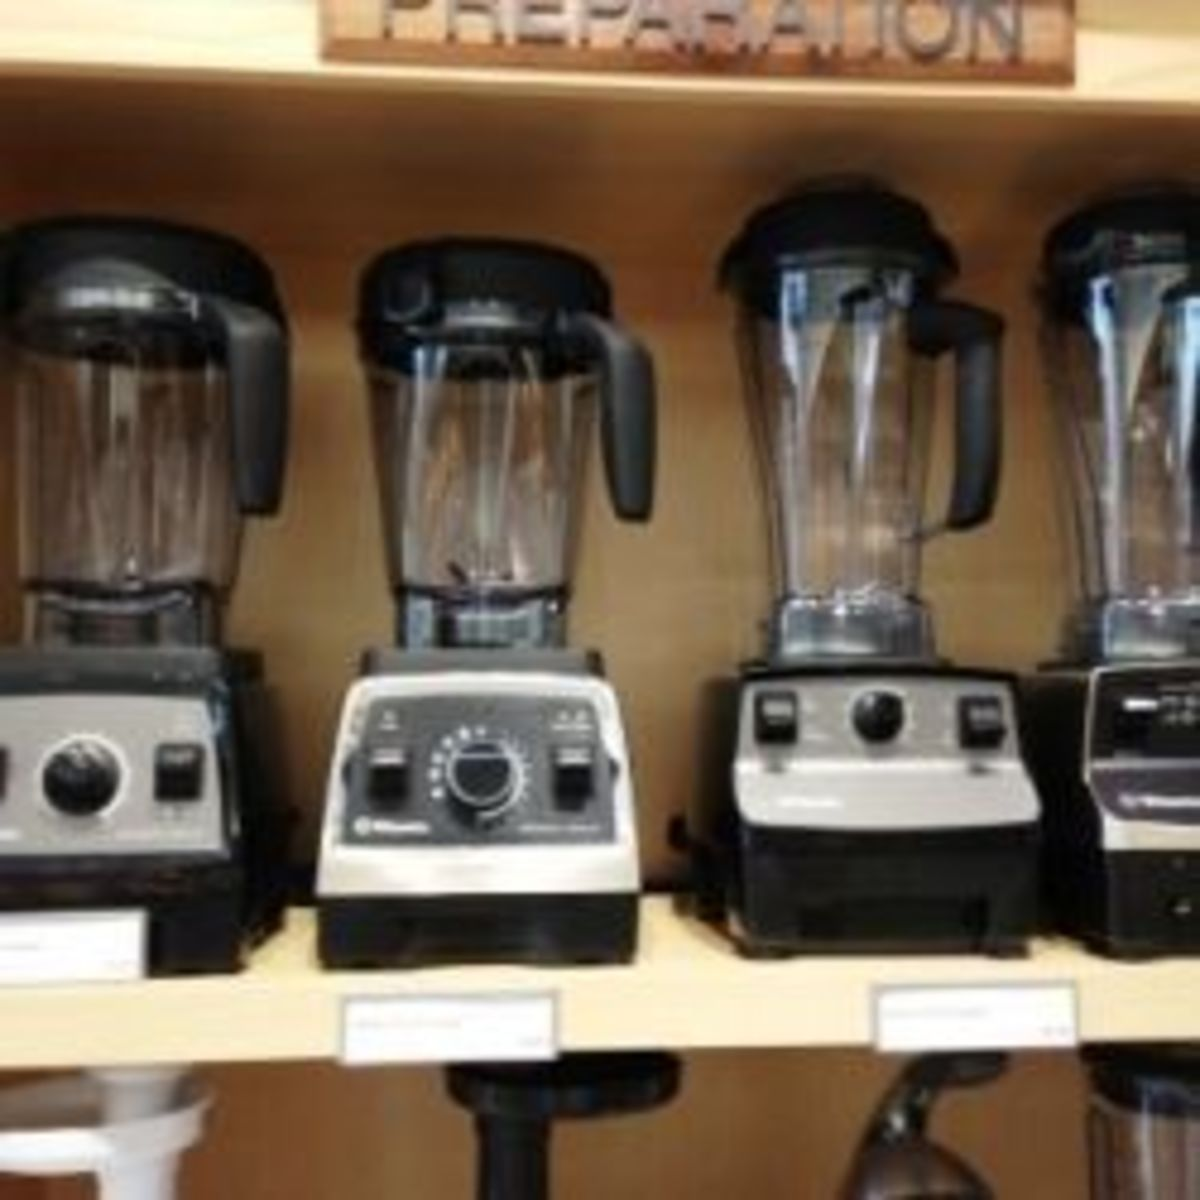 This is my photo of the Vitamix line up at the local retailer. Notice the height difference of the two on the left (Professional Series 300 and 750) compared to the taller older models on the right (5200 and 500).